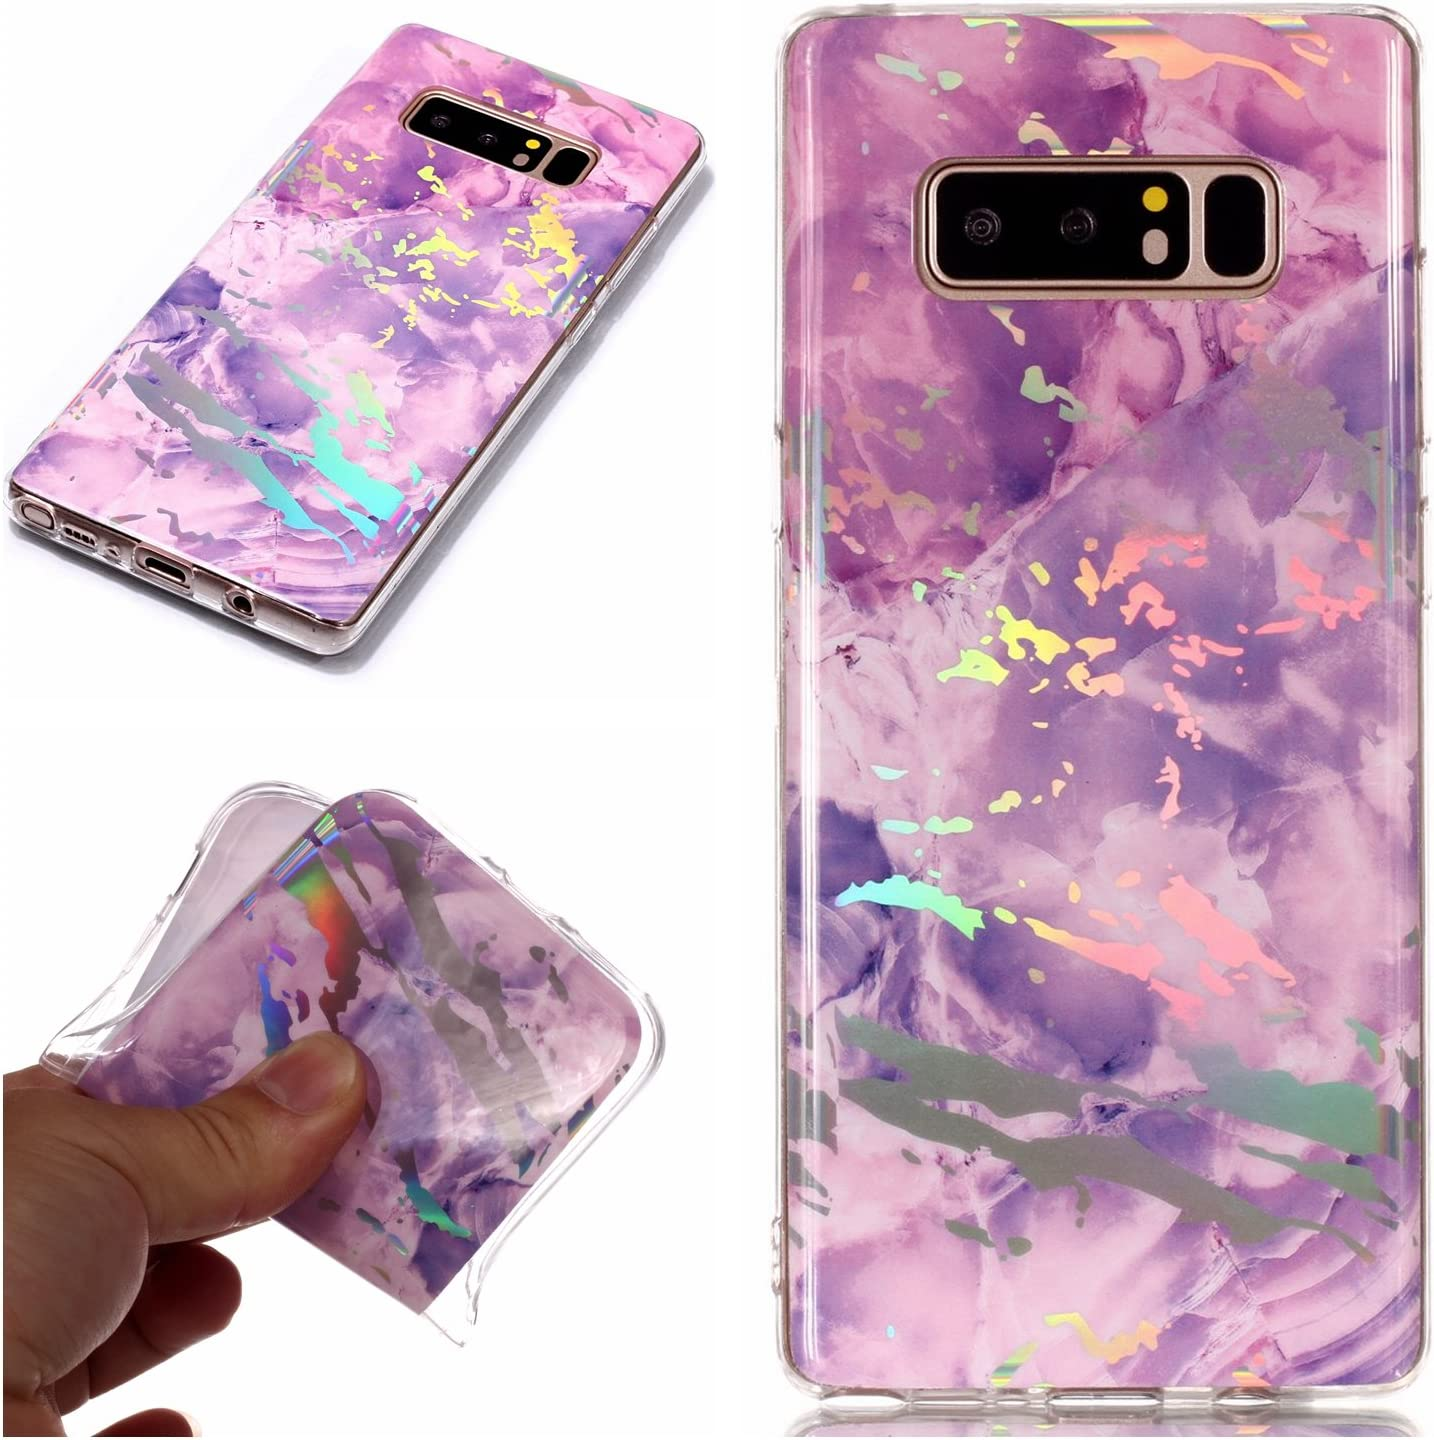 White and Pink for Samsung Galaxy Note 8 Glitter Case Marble and Screen Protector,Clear Soft Silicone Phone Case Thin Slim Gel TPU Bumper Shell,QFFUN Shockproof Anti-Scratch Protective Back Cover